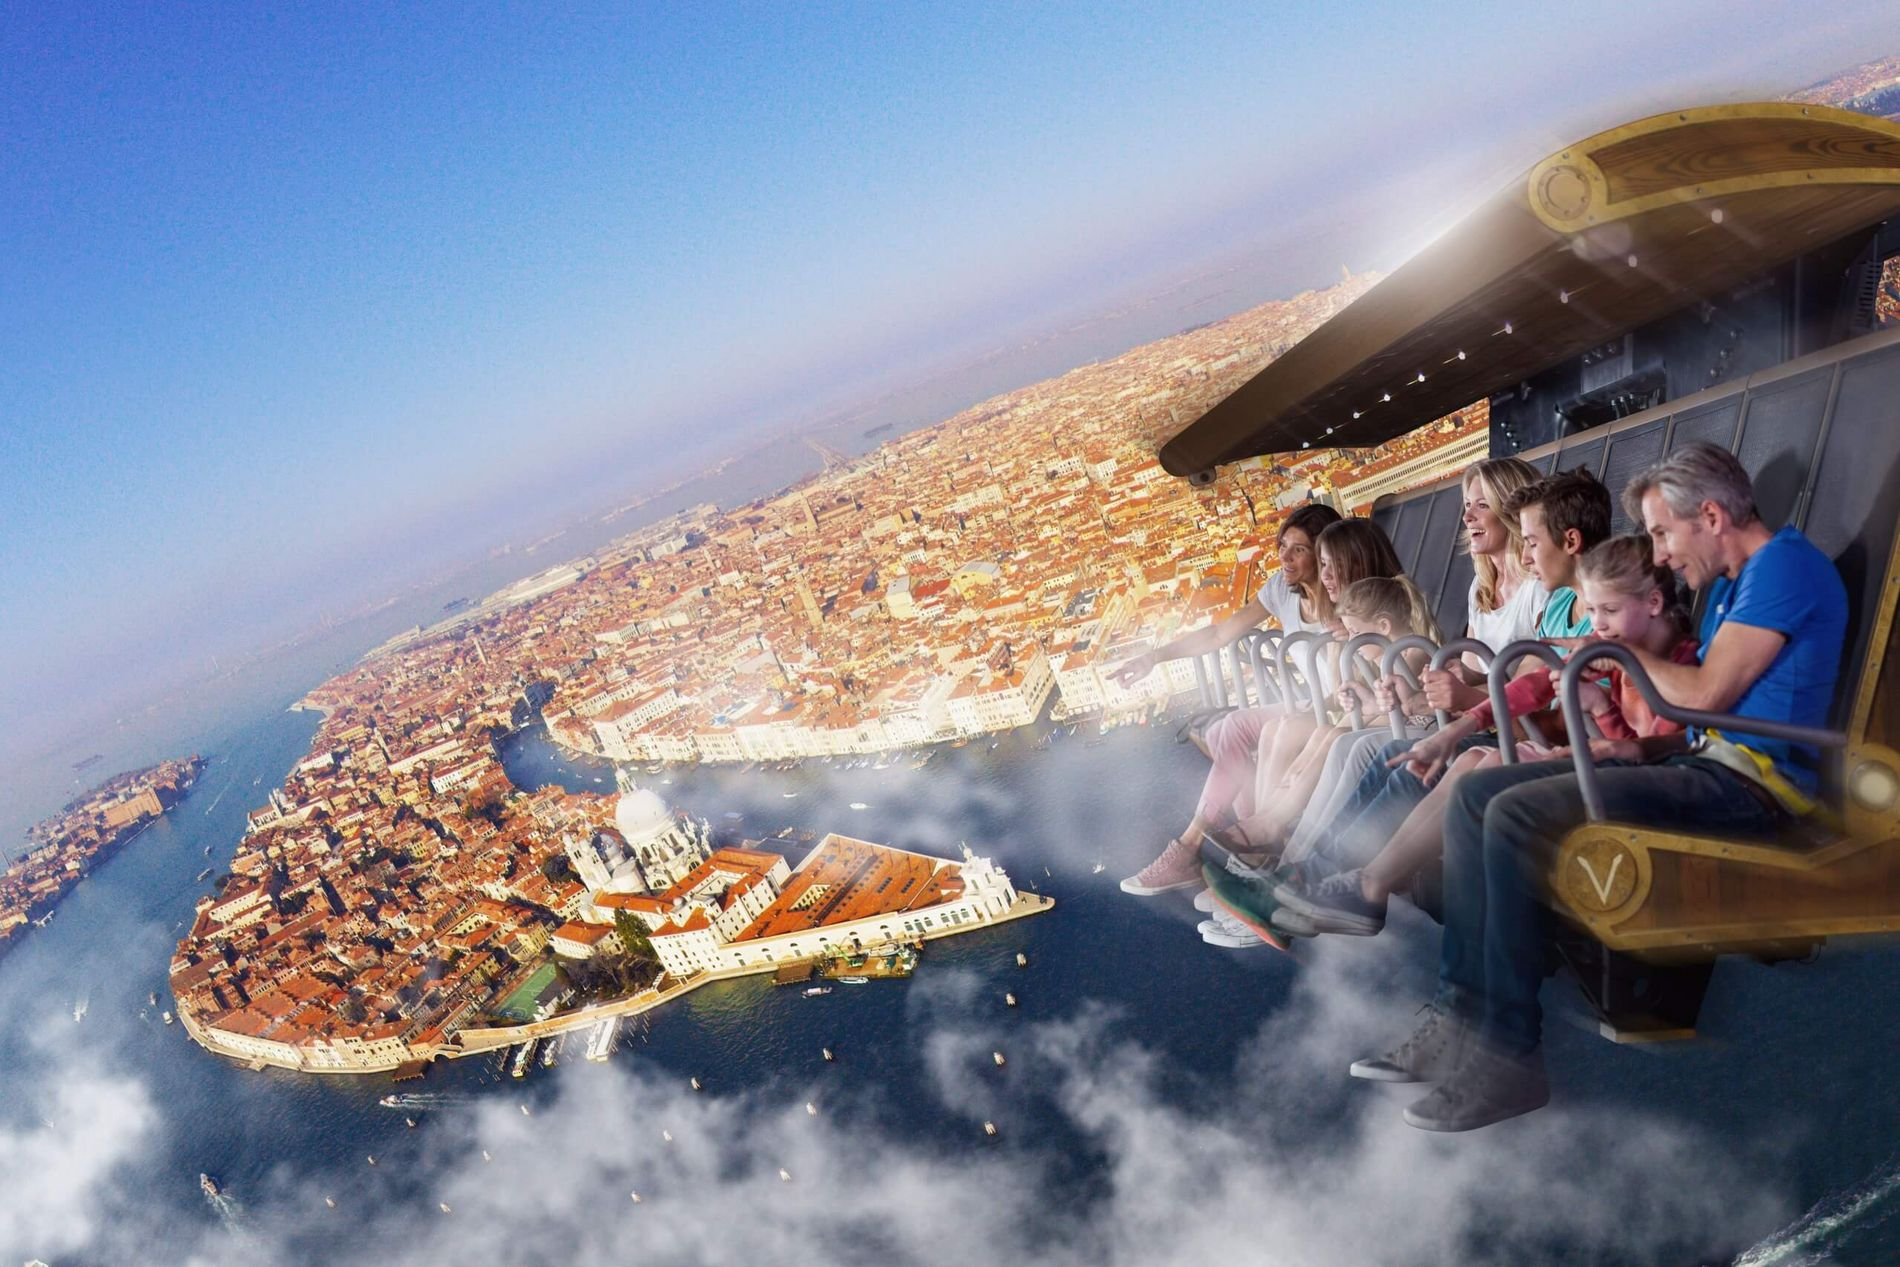 Europapark Attraktion